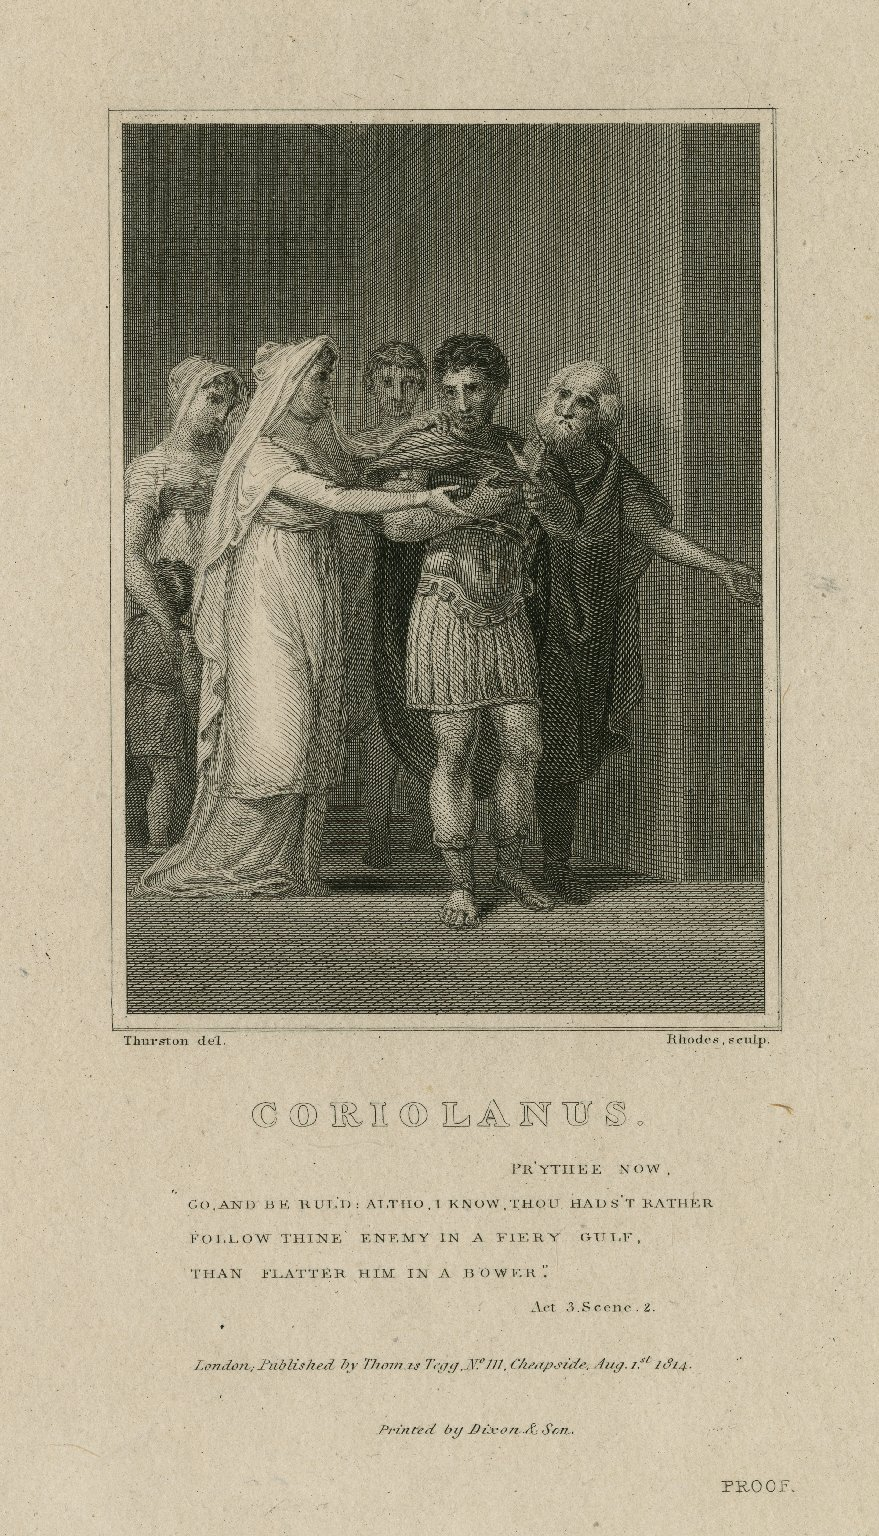 Coriolanus, ... Go, and be rul'd; altho, I know, thou hads't rather follow thine enemy ... act 3, scene 2 [graphic] / Thurston, del. ; Rhodes, sculp.